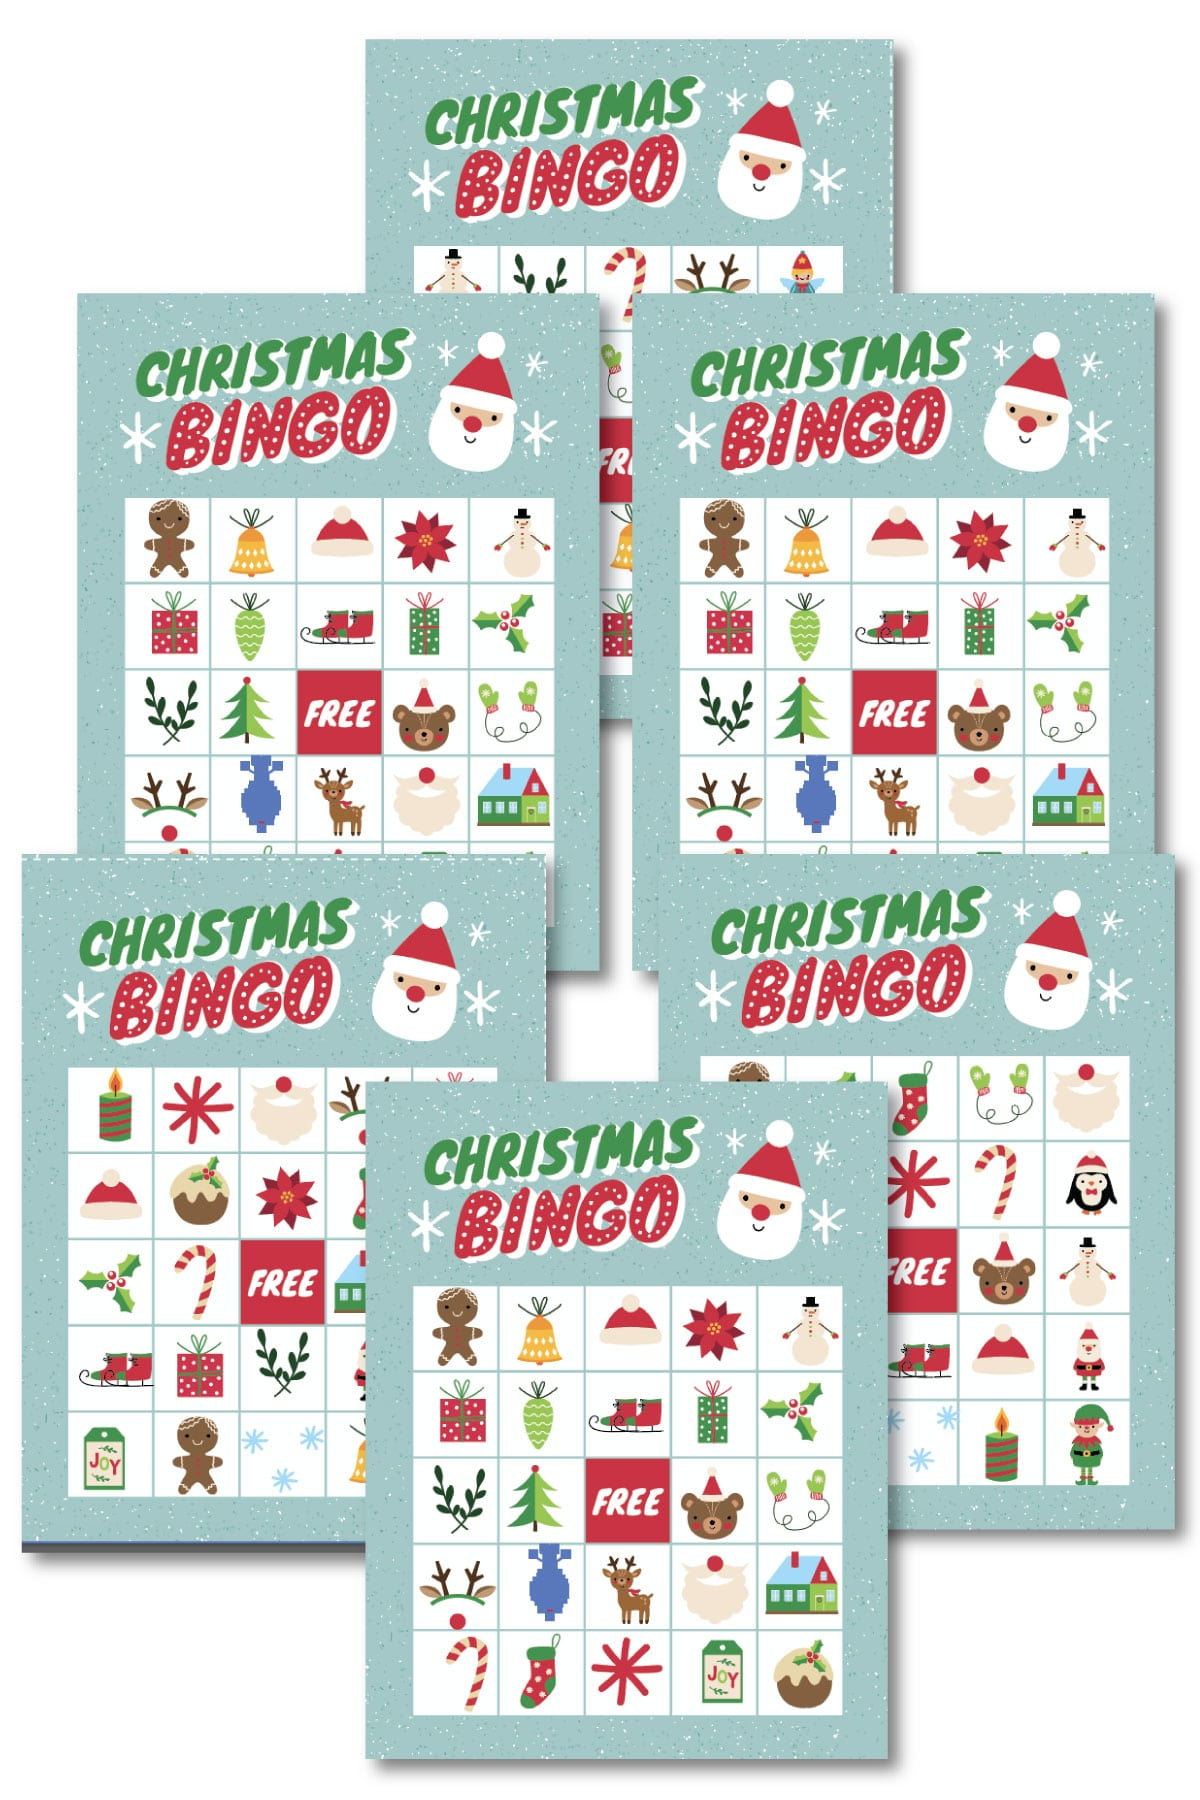 Christmas bingo cards in a pile